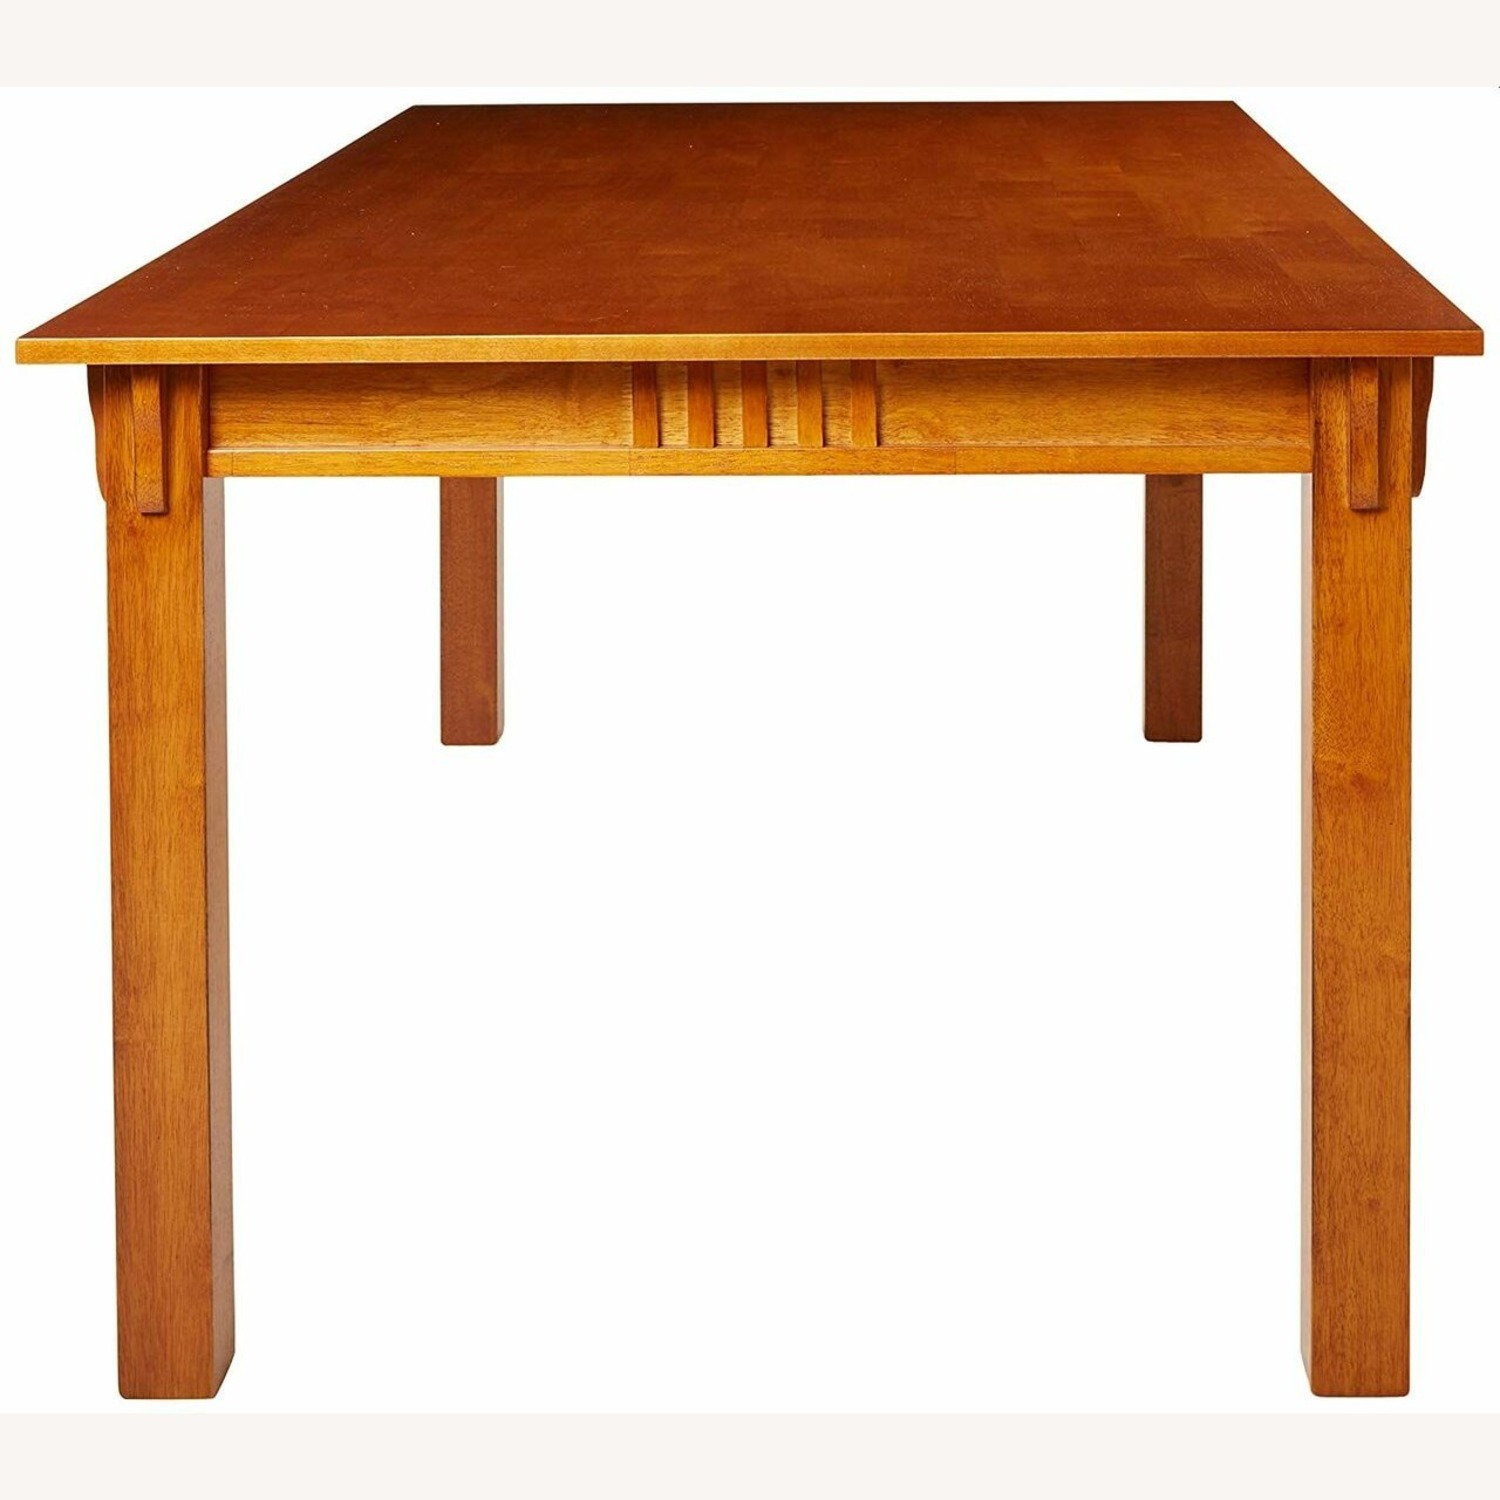 Dining Table In Hardwood Sienna Brown Finish - image-2